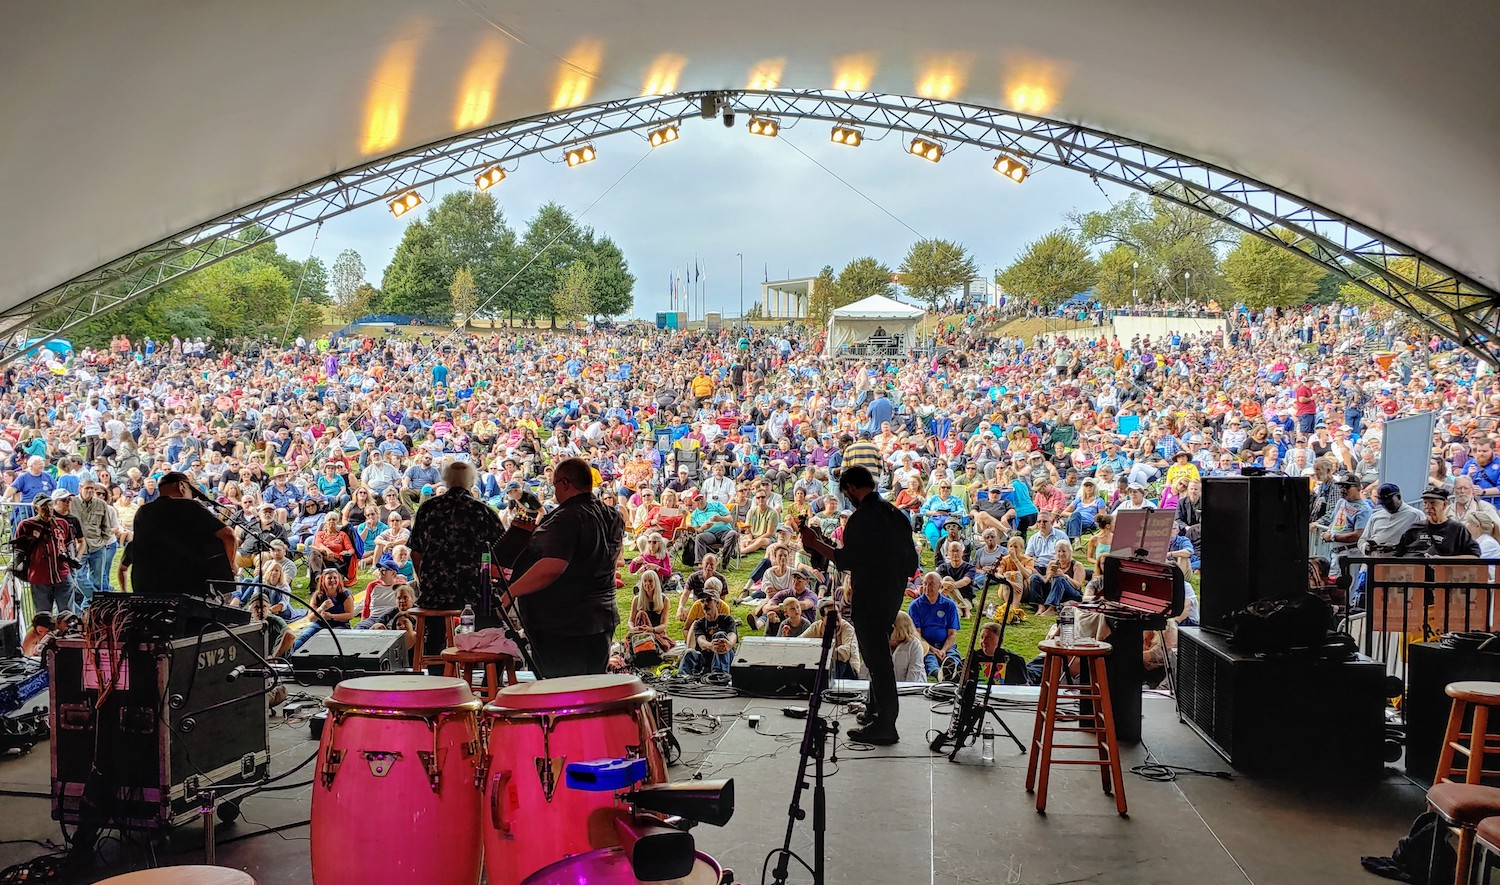 A view of the crowd at a past folk festival from the back of the stage. People playing instruments are shadows in the foreground.